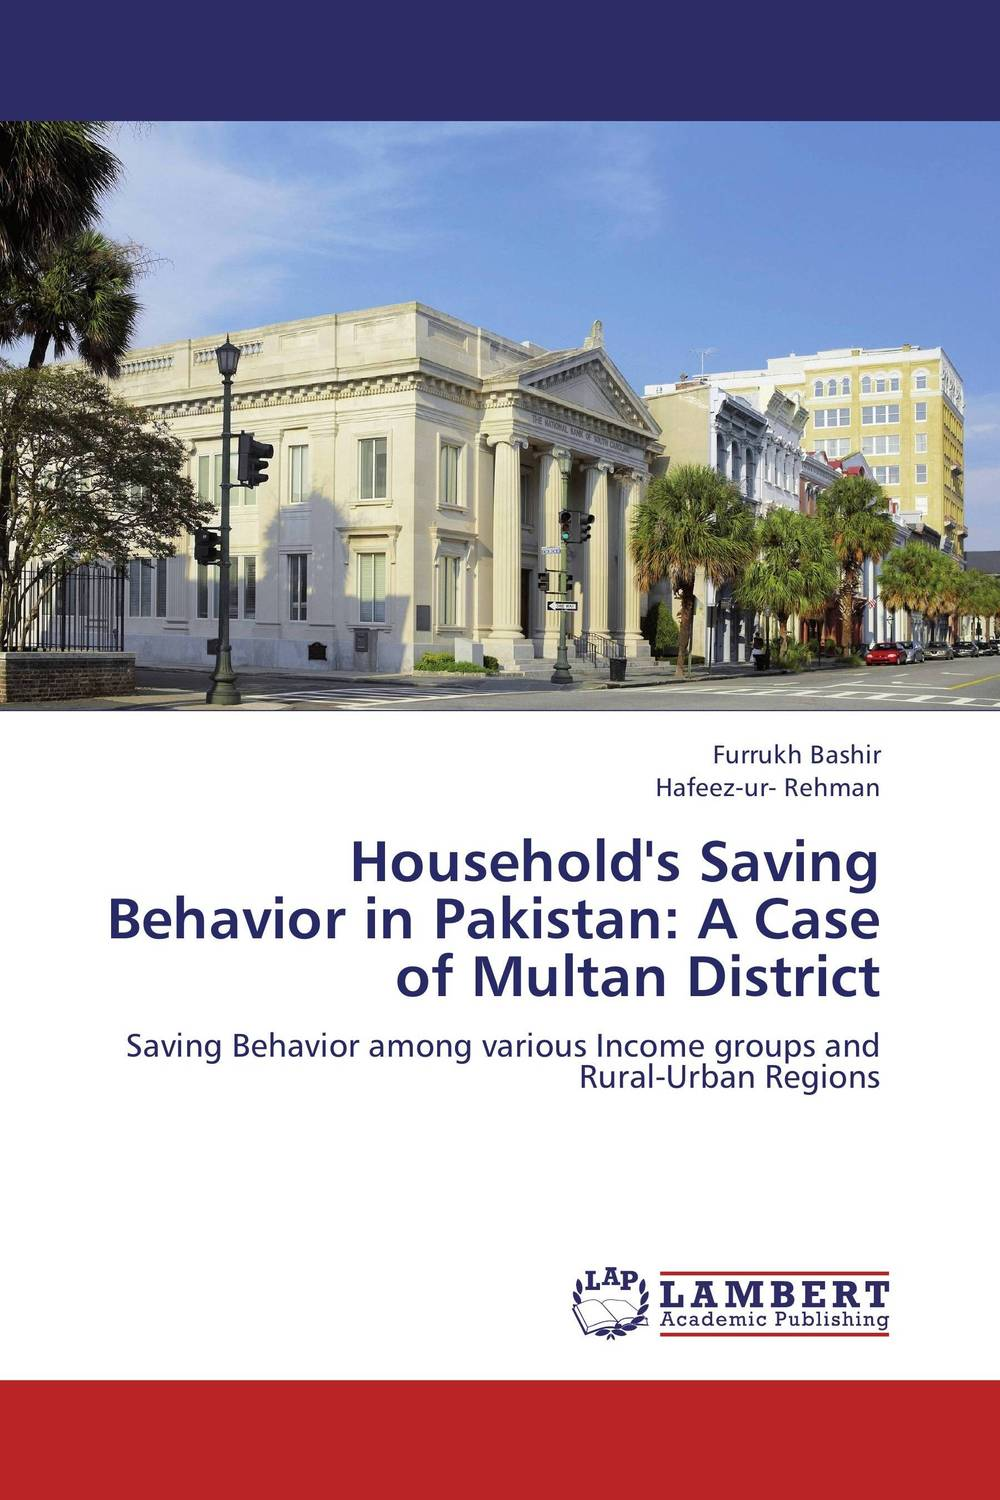 Household's Saving Behavior in Pakistan: A Case of Multan District original access control card reader without keypad smart card reader 125khz rfid card reader door access reader manufacture